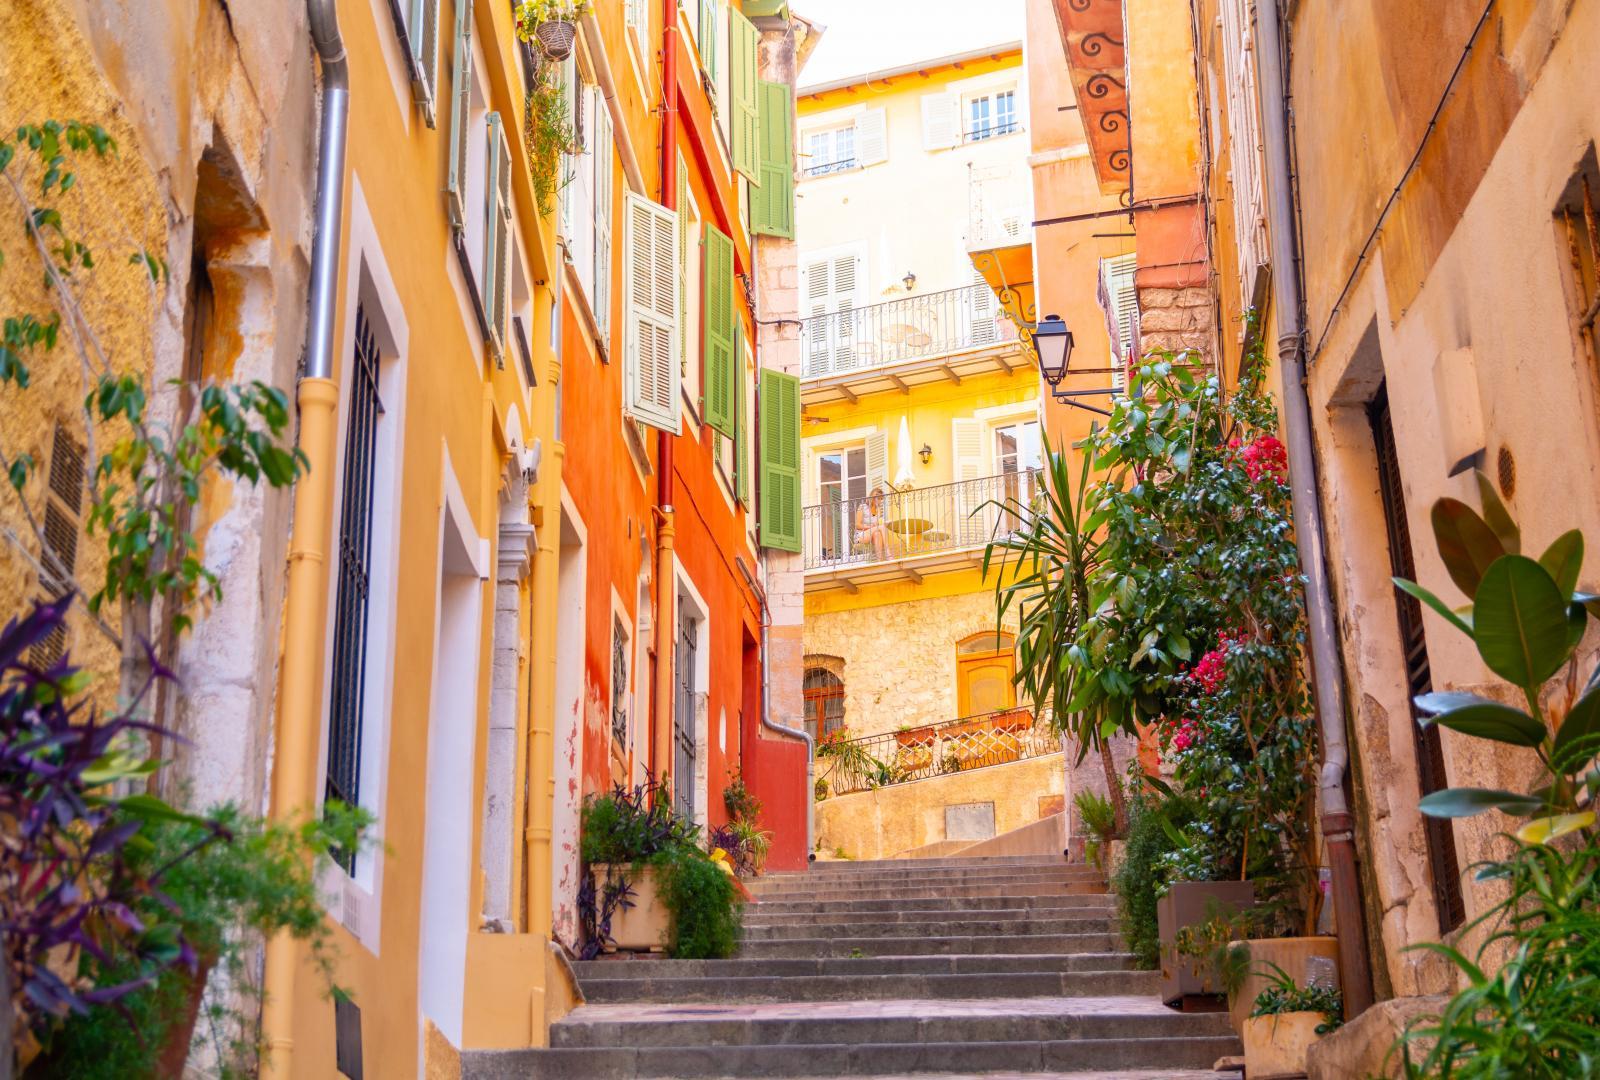 Visit the hidden gems of the Côte d'Azur by private Charter Yacht